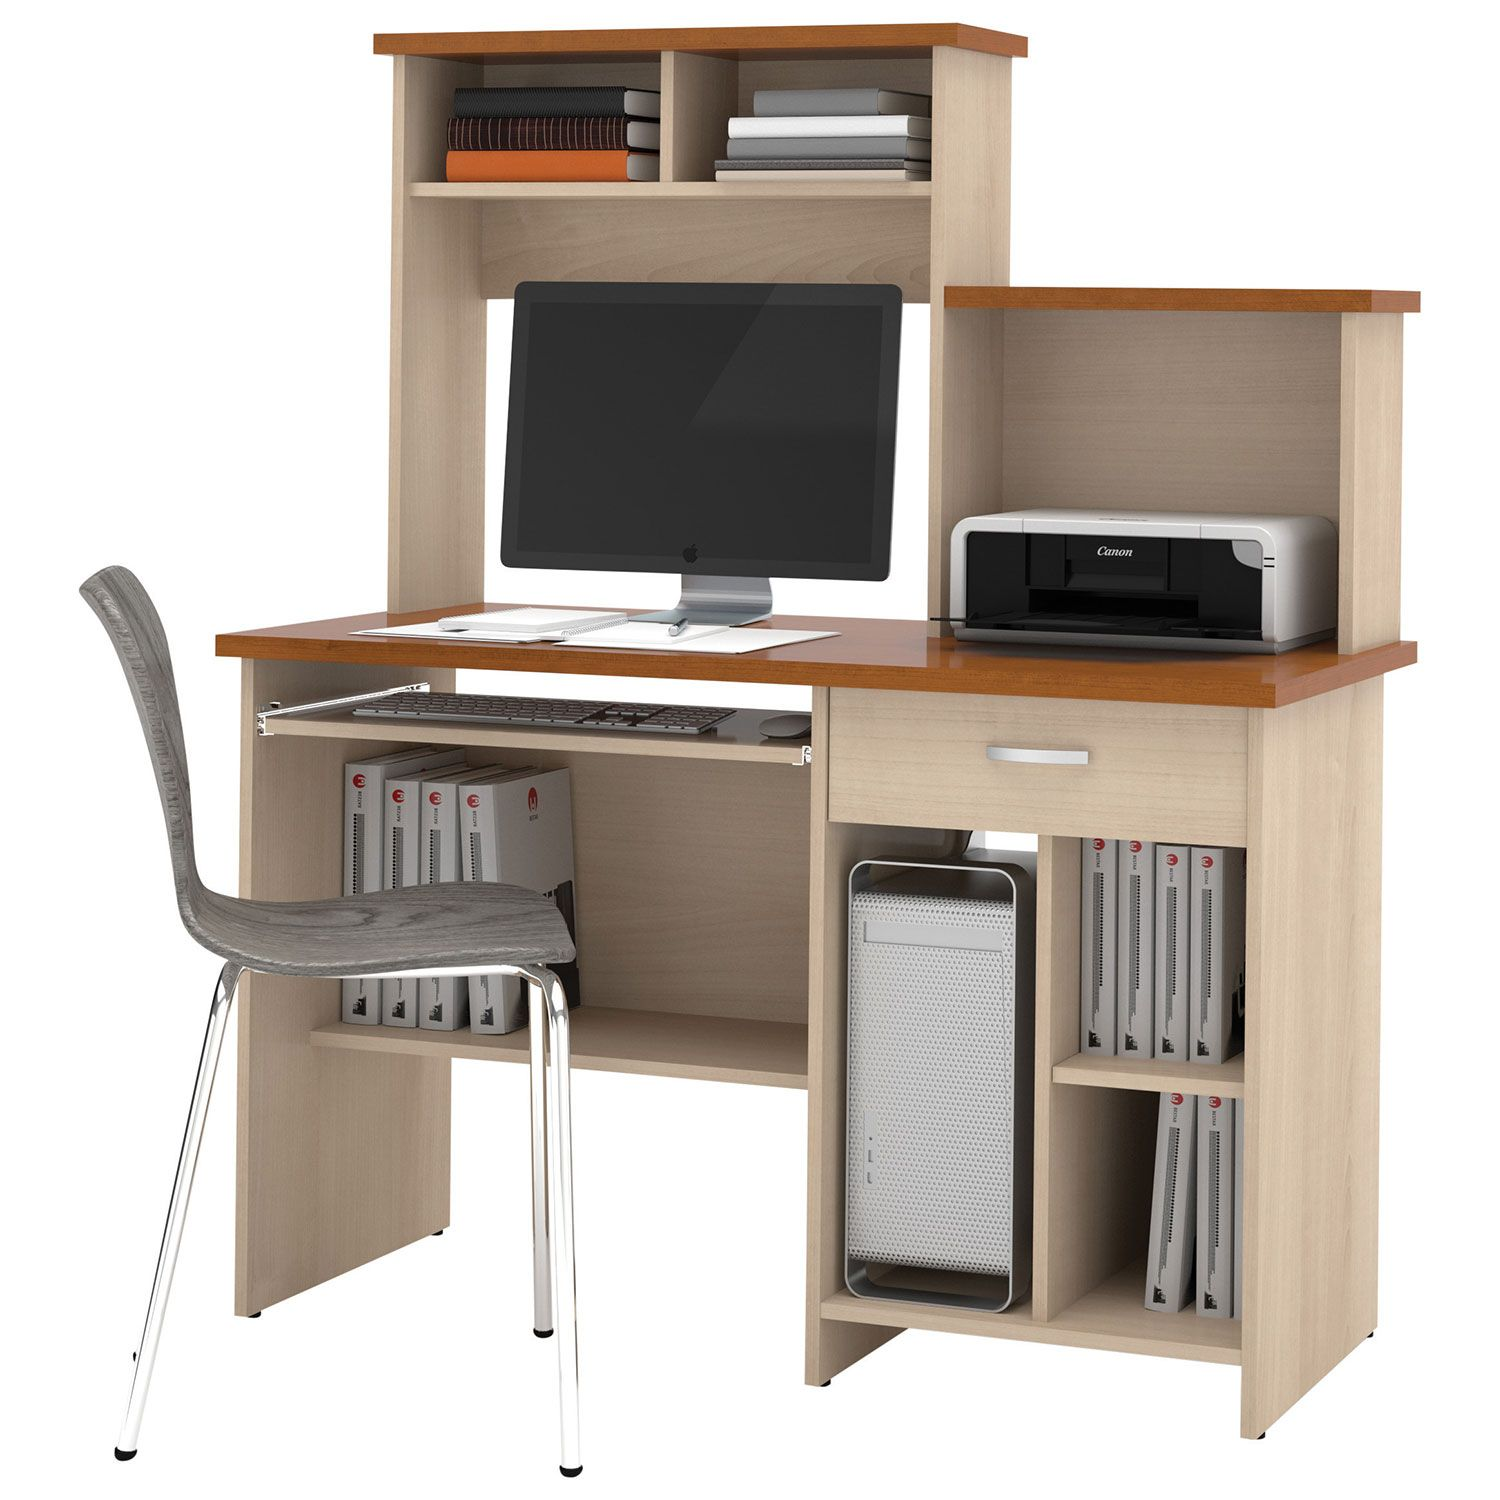 - Best Buy- $267.99 Home Office Computer Desk, Furniture, Home